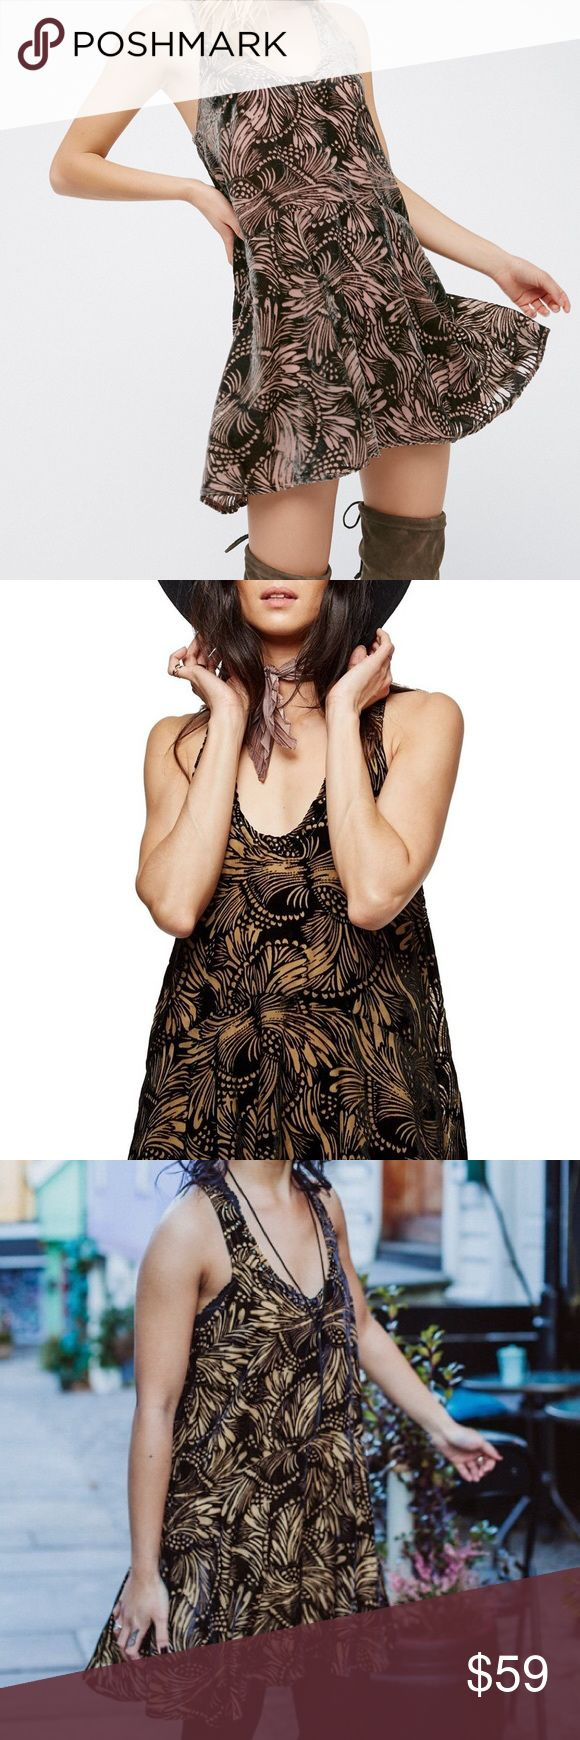 Free People Ellie Burnout Mini Dress XS Velvet Gorgeous black velvet and tan burnout mini dress from Free People, size XS. Oversized, lined over the bust and through the skirt. Black studding at the neckline. Excellent condition! Free People Dresses Mini